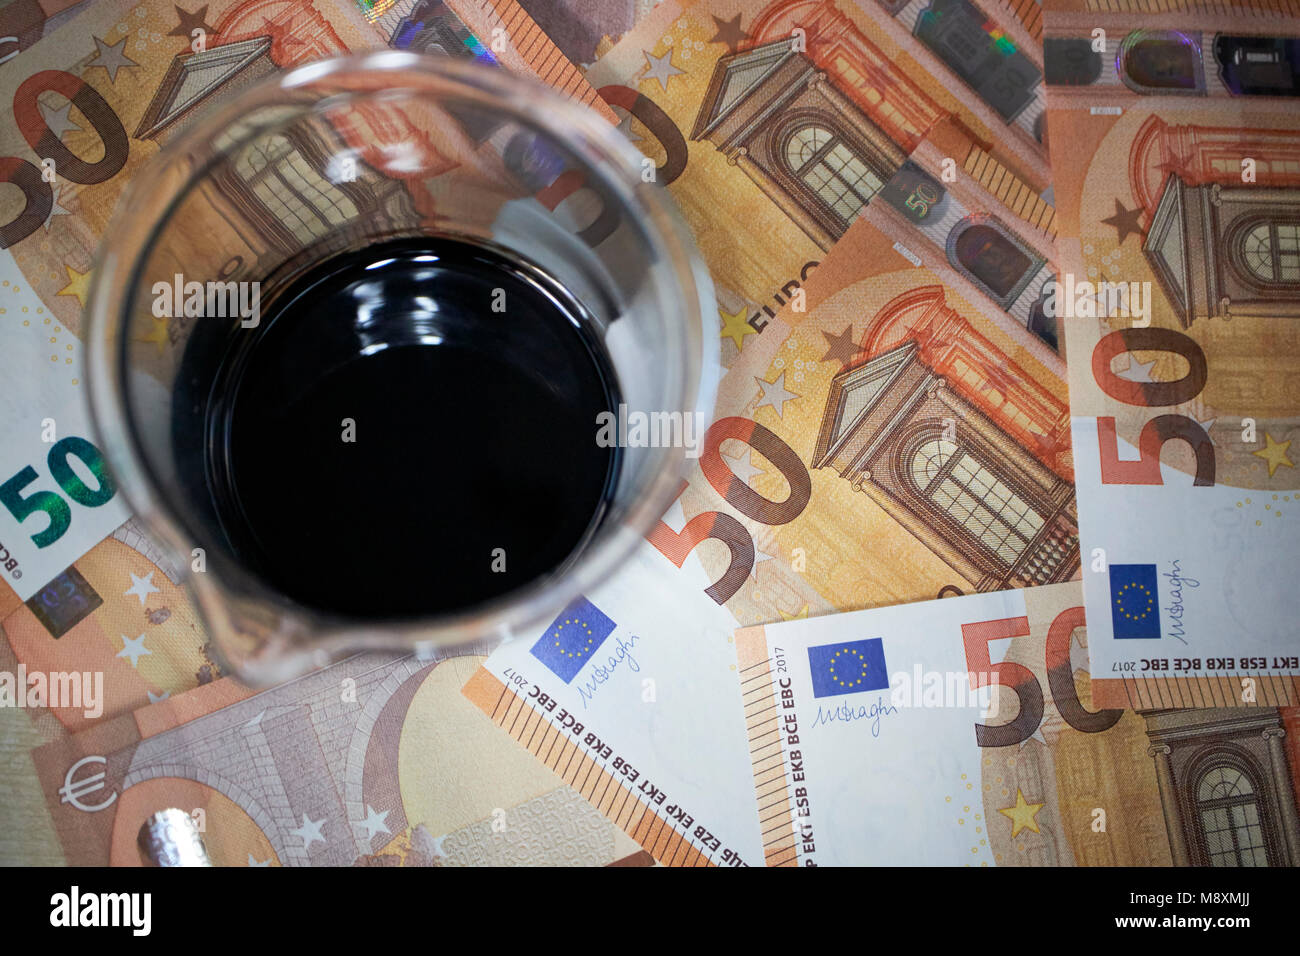 jar of crude oil with currency trading concept - Stock Image